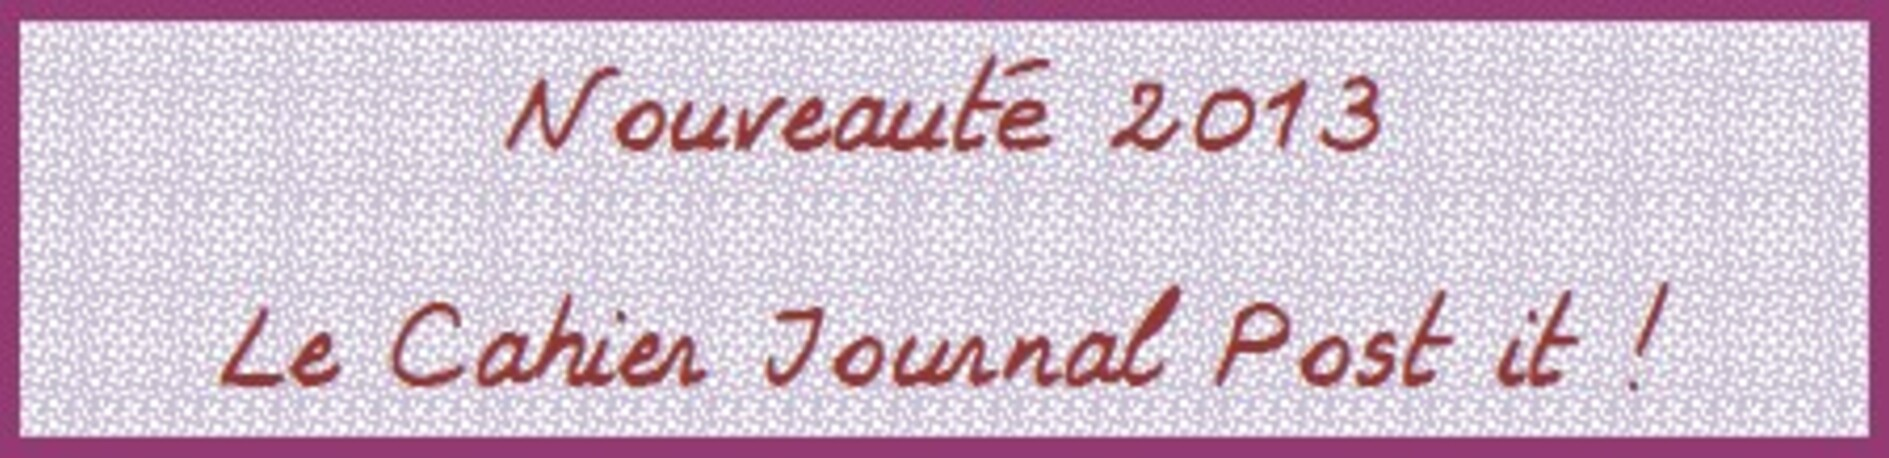 Le cahier journal post it !